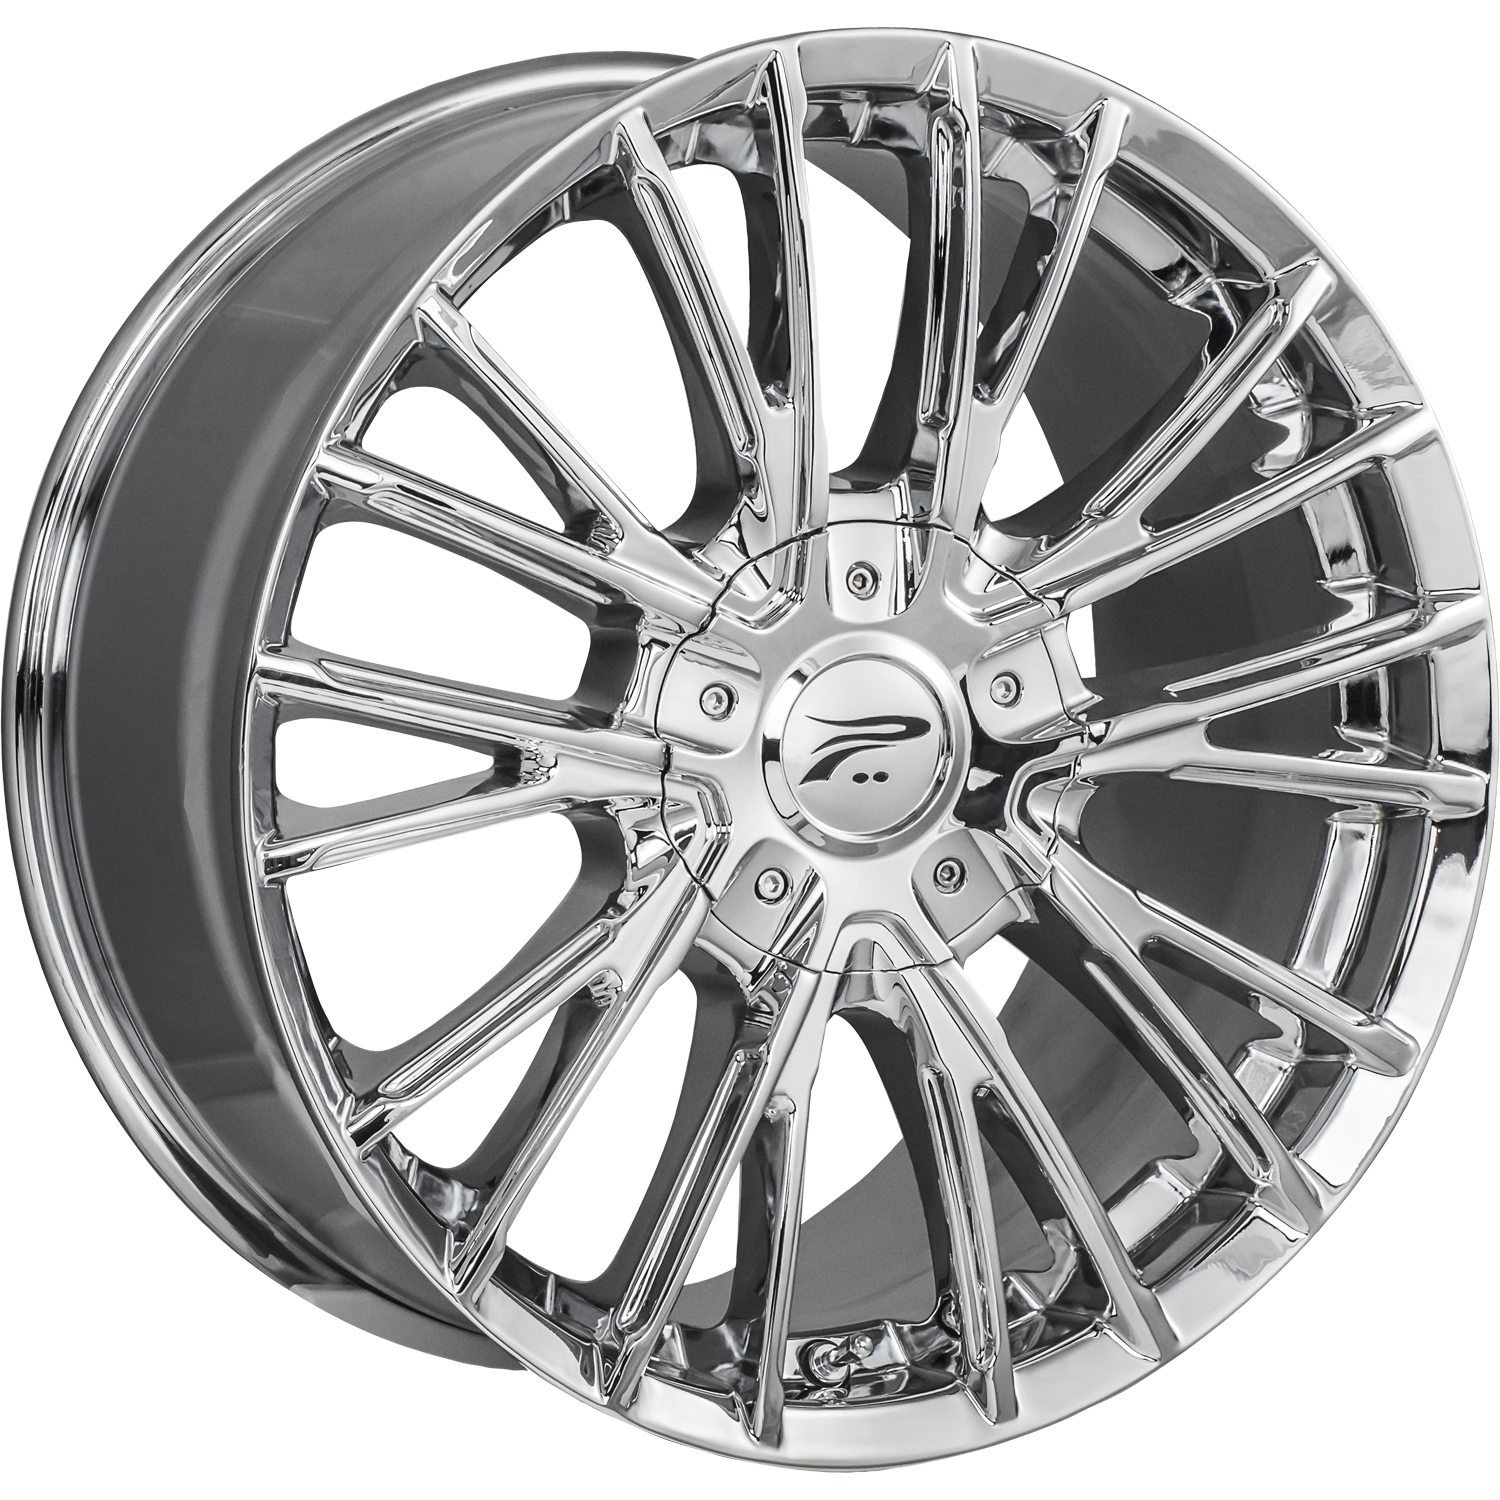 wheels jnc products sale for platinum auto vcgodrivets